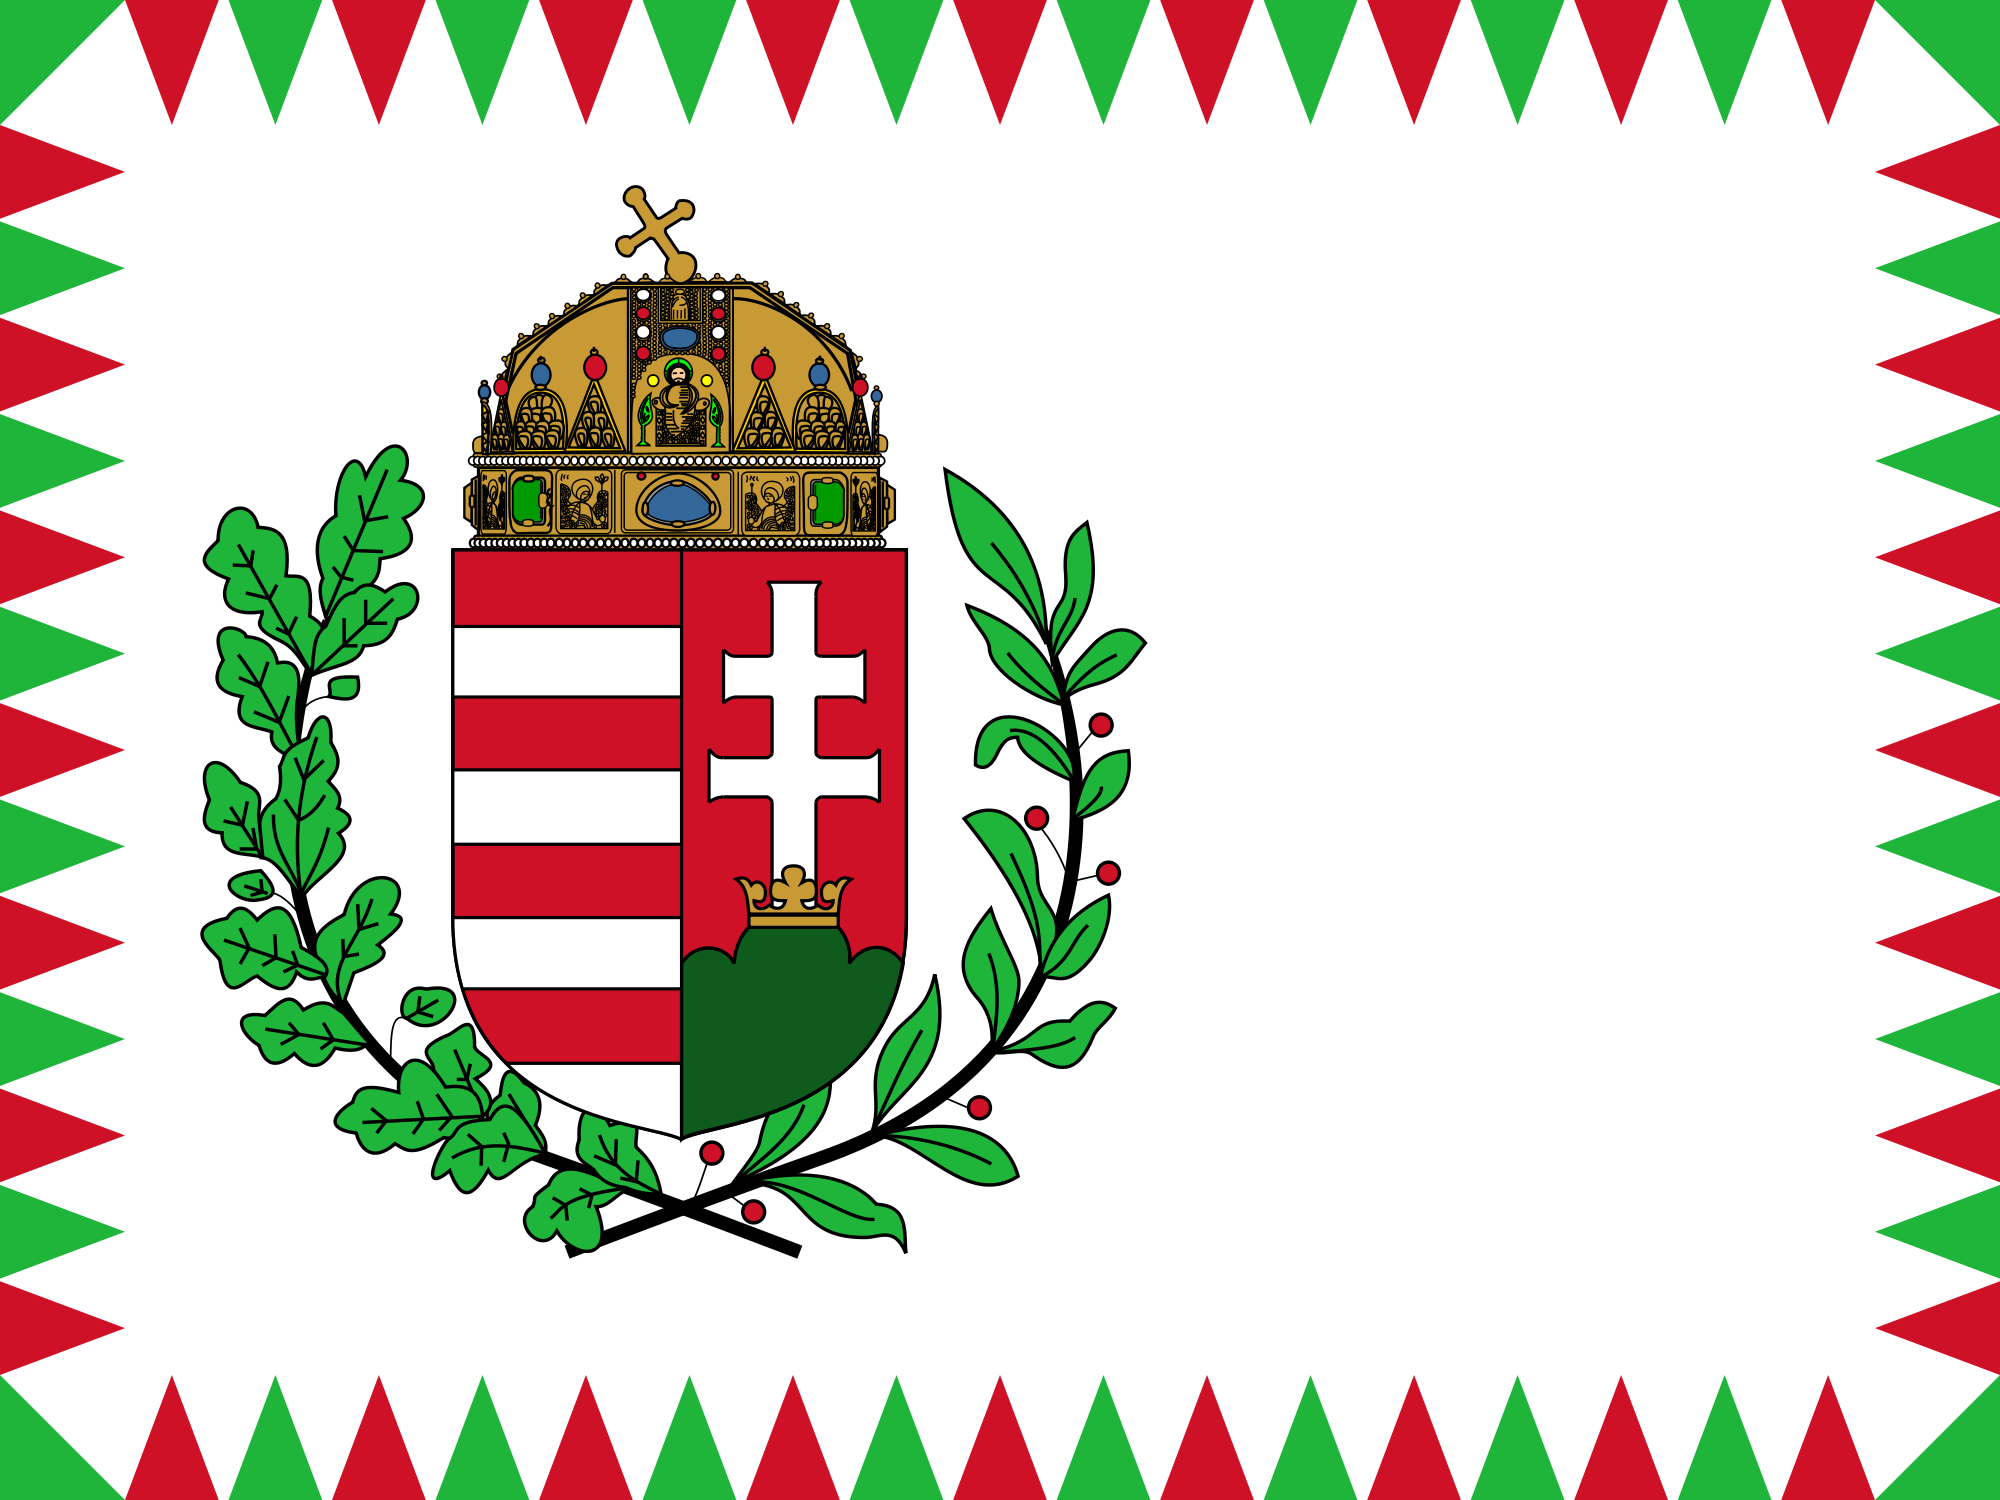 Hungary (Naval ensign)